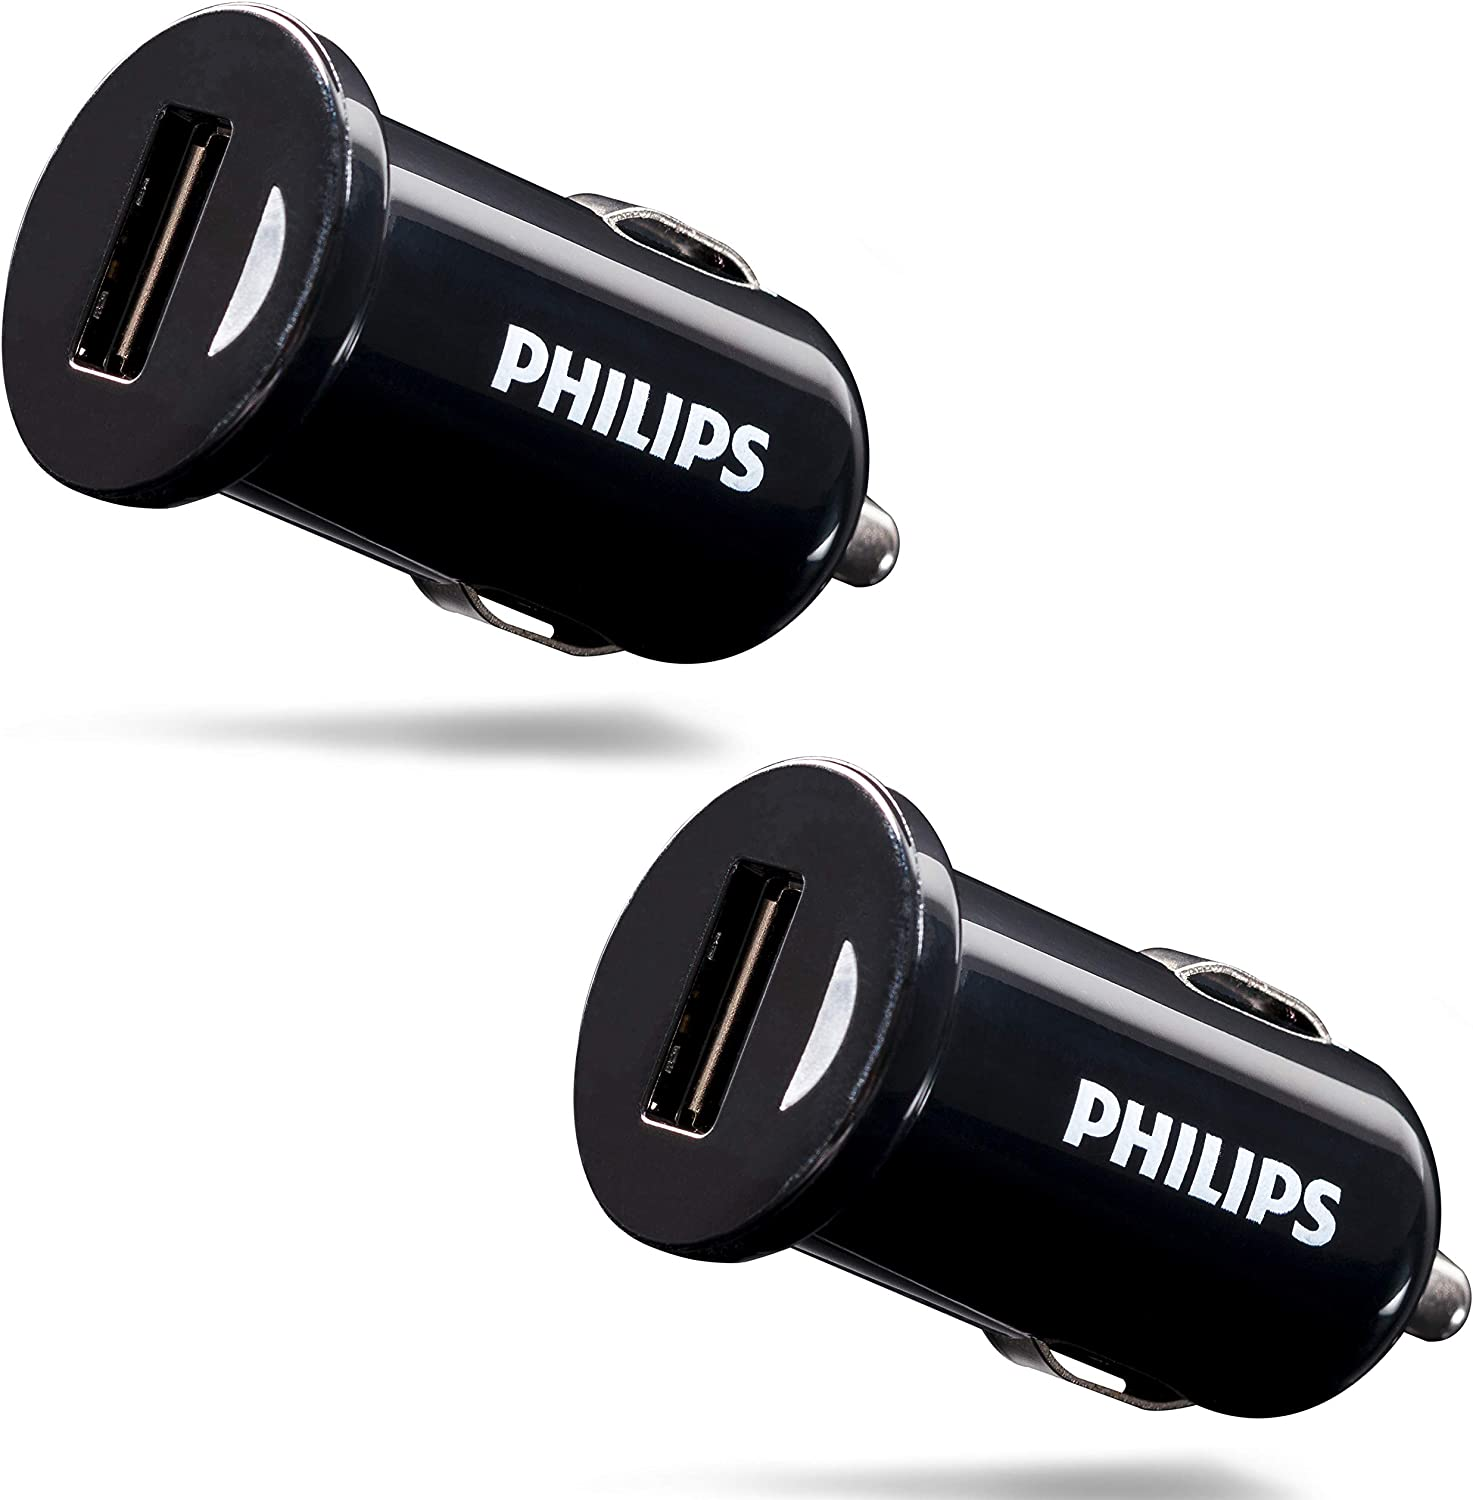 Philips 5W USB Car Charger, 2 Pack, For iPhone XS/XR/X/8, iPad Pro/Air/Mini, Samsung Galaxy S10/S9/Plus, Google Pixel C/3/2/XL and More, DLP2548/37